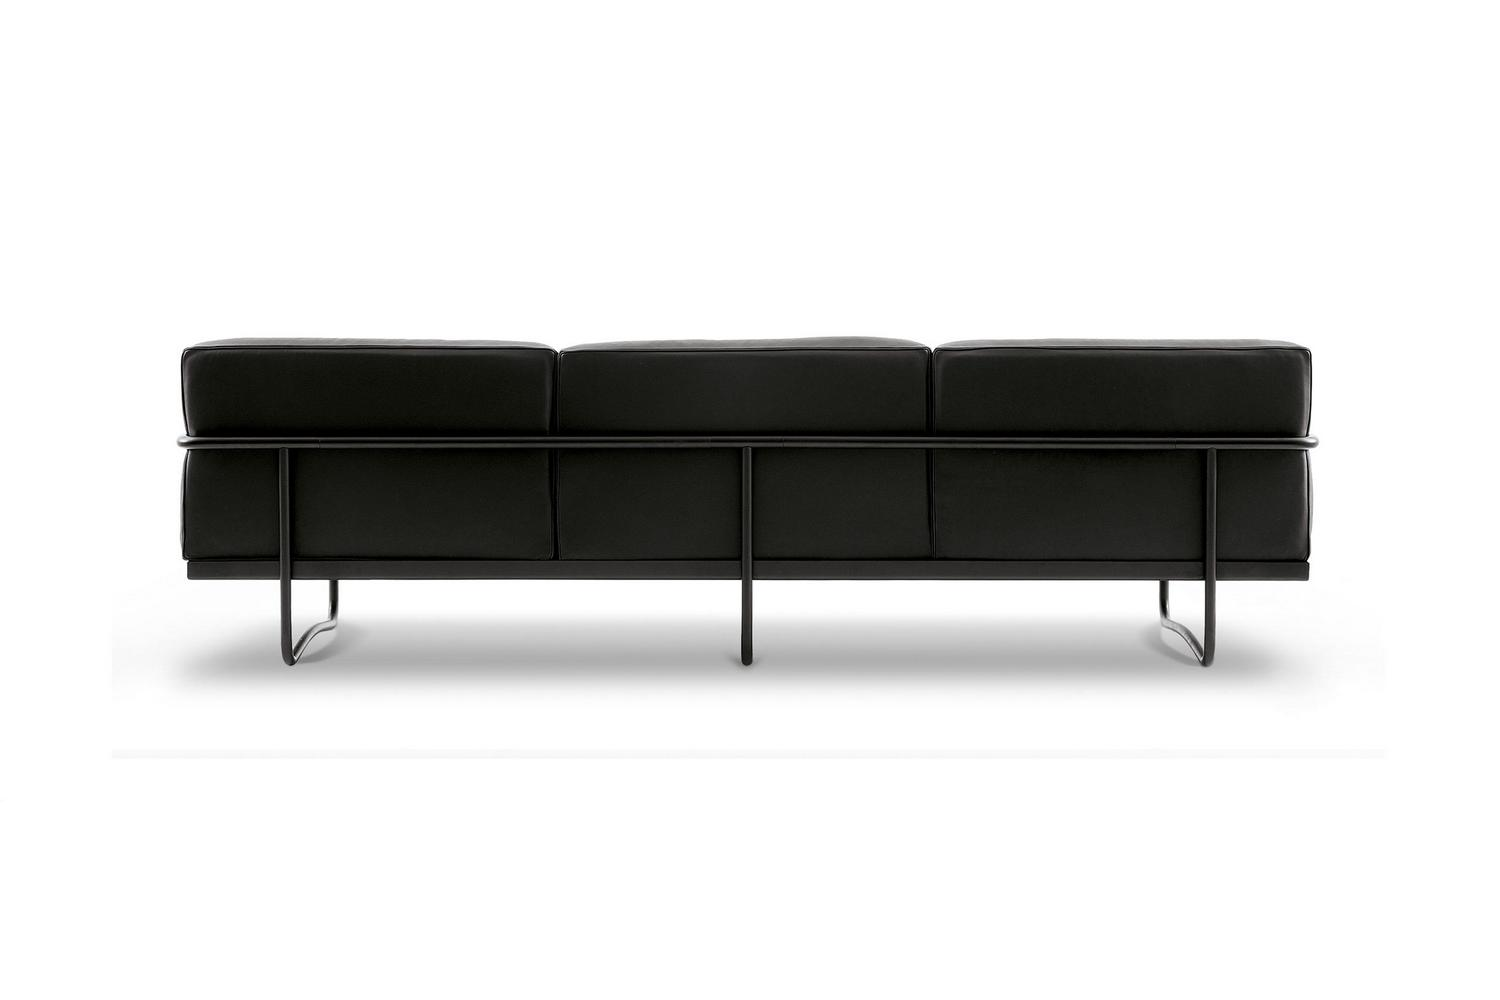 lc5 sofa price sandhill outdoor sectional set by le corbusier pierre jeanneret charlotte perriand for